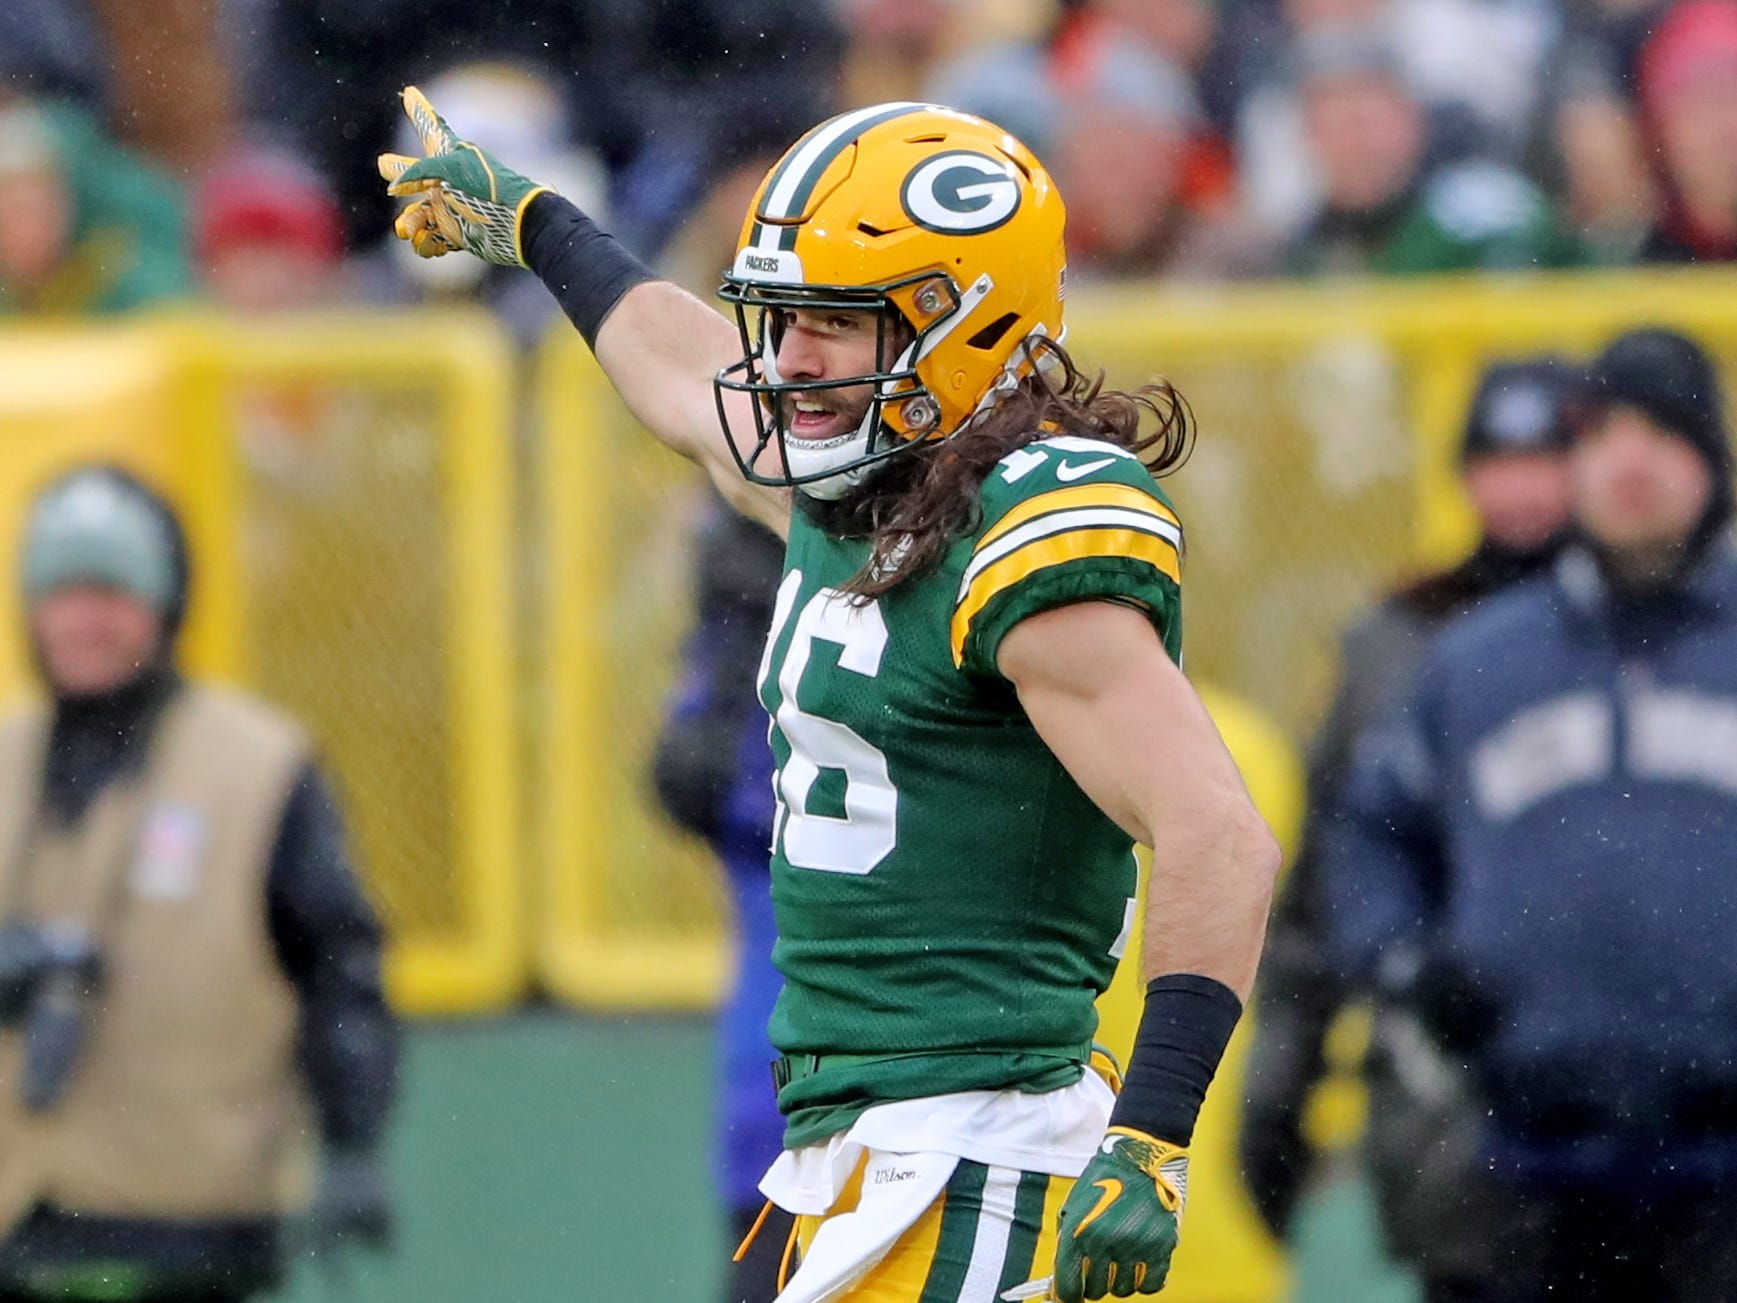 Green Bay Packers wide receiver Jake Kumerow (16) signals first down after his first NFL catch against the Arizona Cardinals Sunday, December 2, 2018 at Lambeau Field in Green Bay, Wis. Jim Matthews/USA TODAY NETWORK-Wis